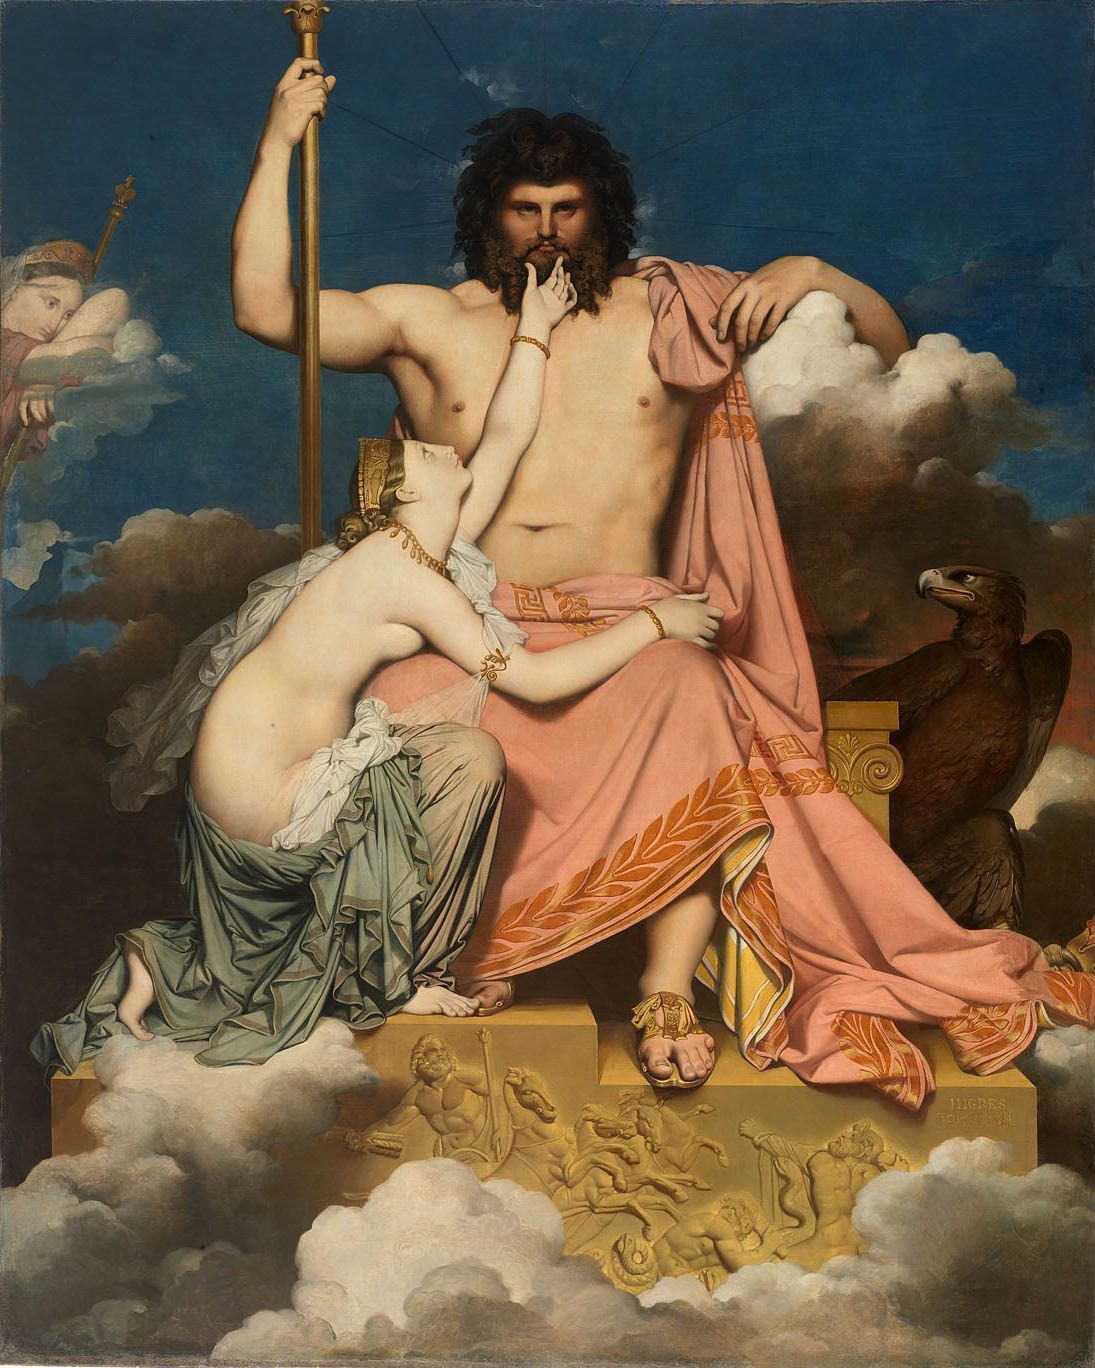 Jean Auguste Dominique Ingres. Jupiter and Thetis